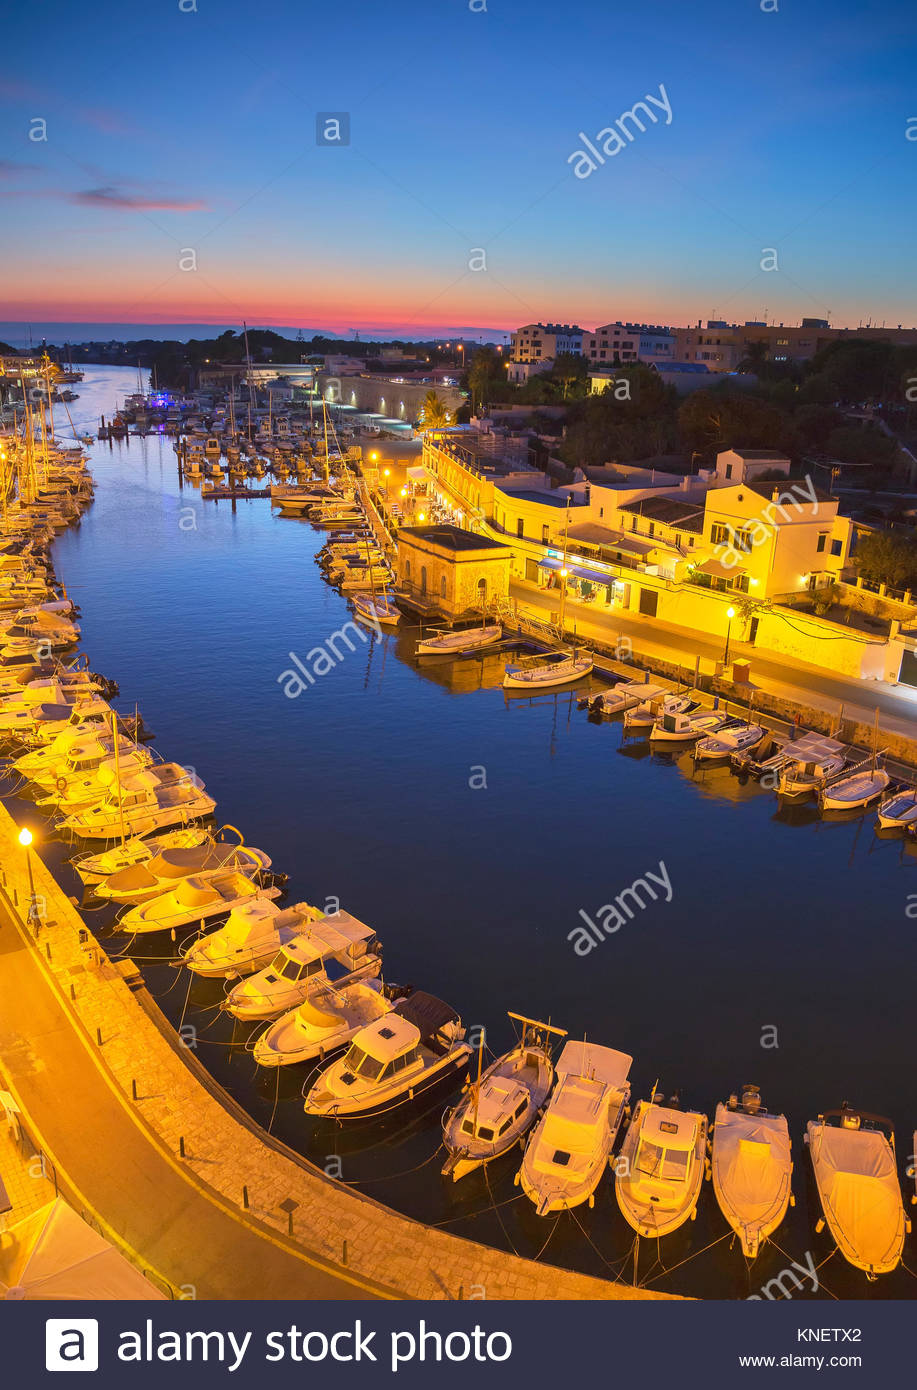 High angle view of historic harbour and rows of moored boats at dusk, Ciutadella, Menorca, Balearic Islands, Spain - Stock Image